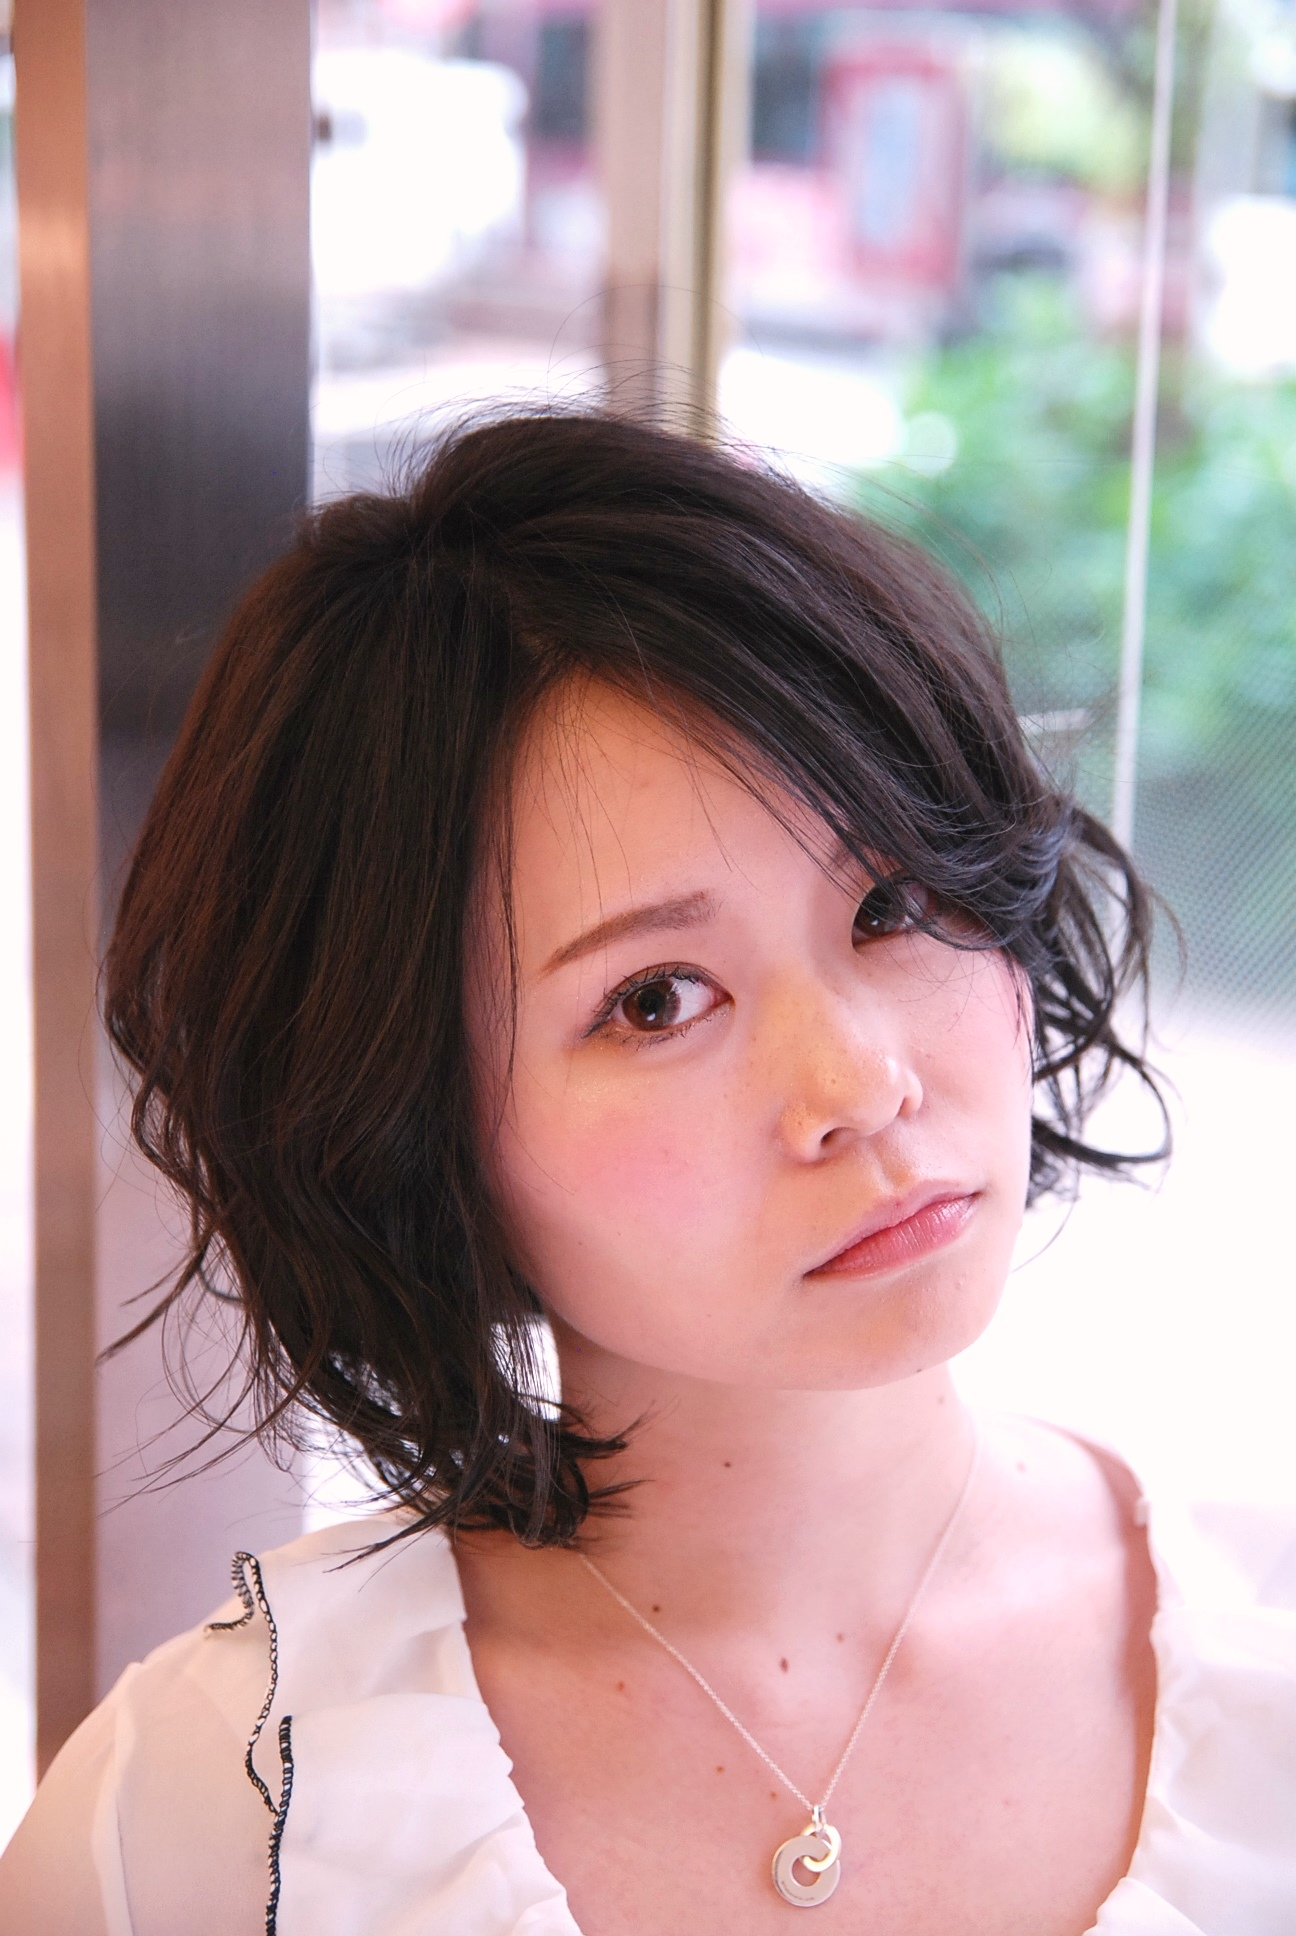 hairstyle59